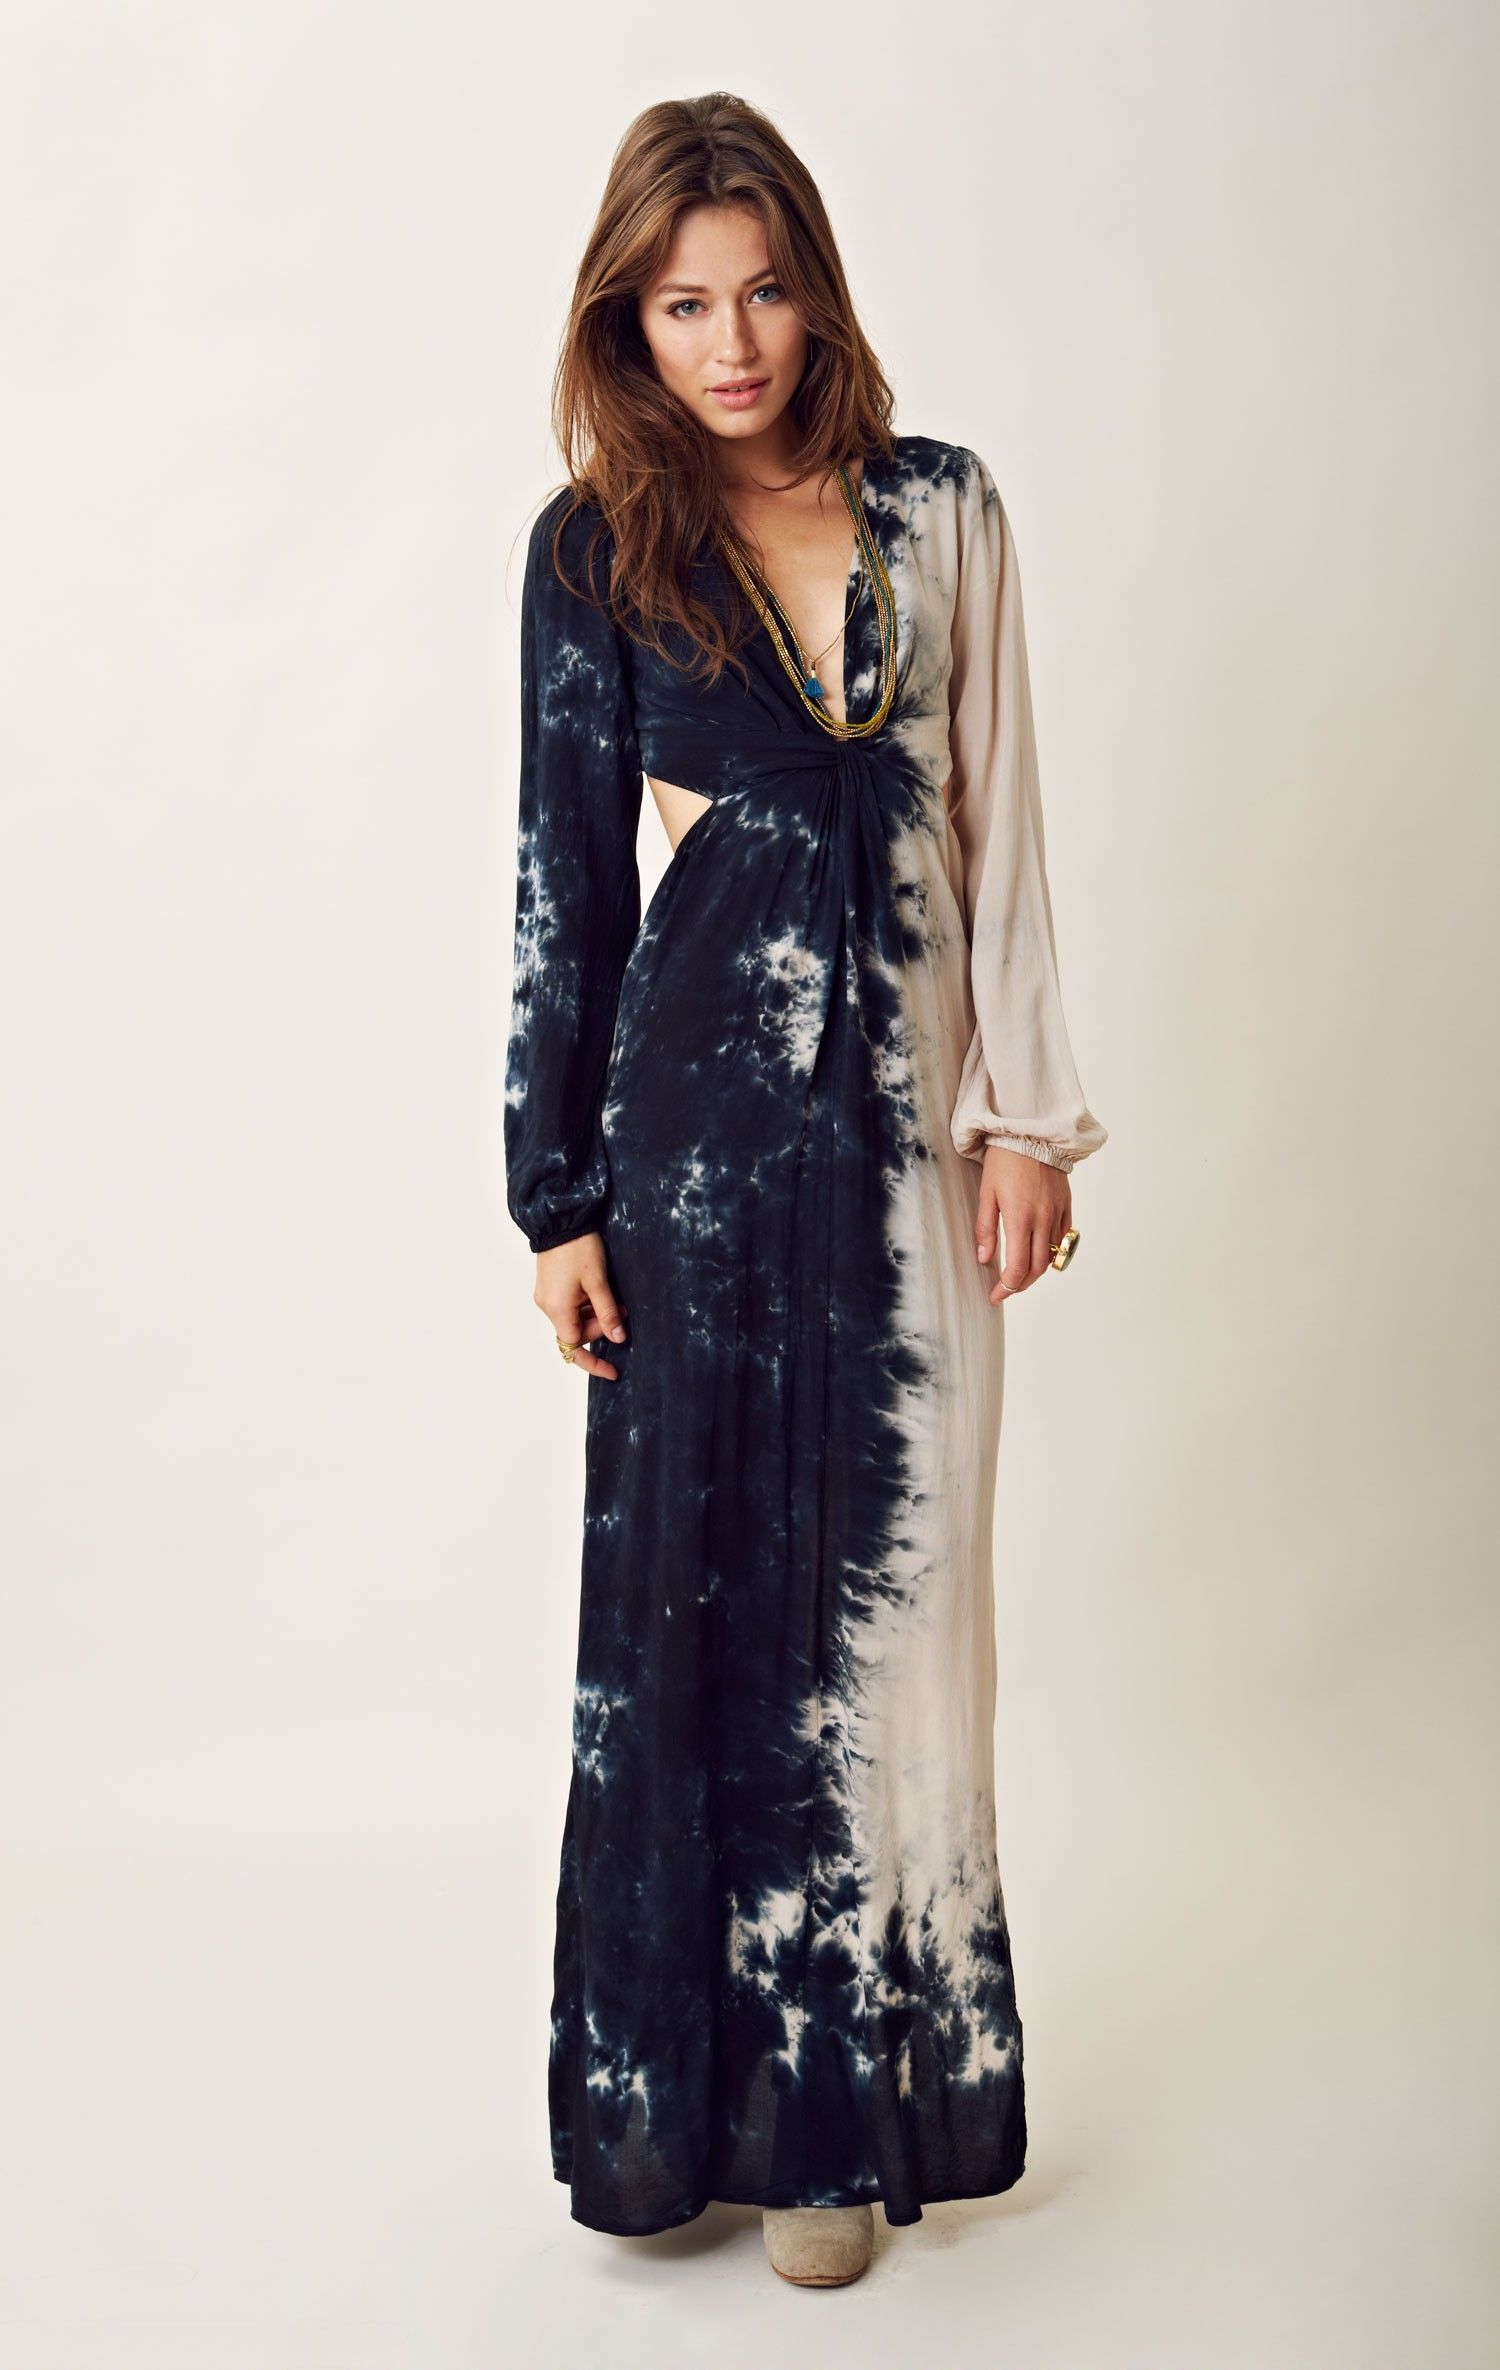 cf432b3635a Tie Dye Twist Bell Sleeve Maxi Dress | NEW ARRIVALS | Maxi dress ...